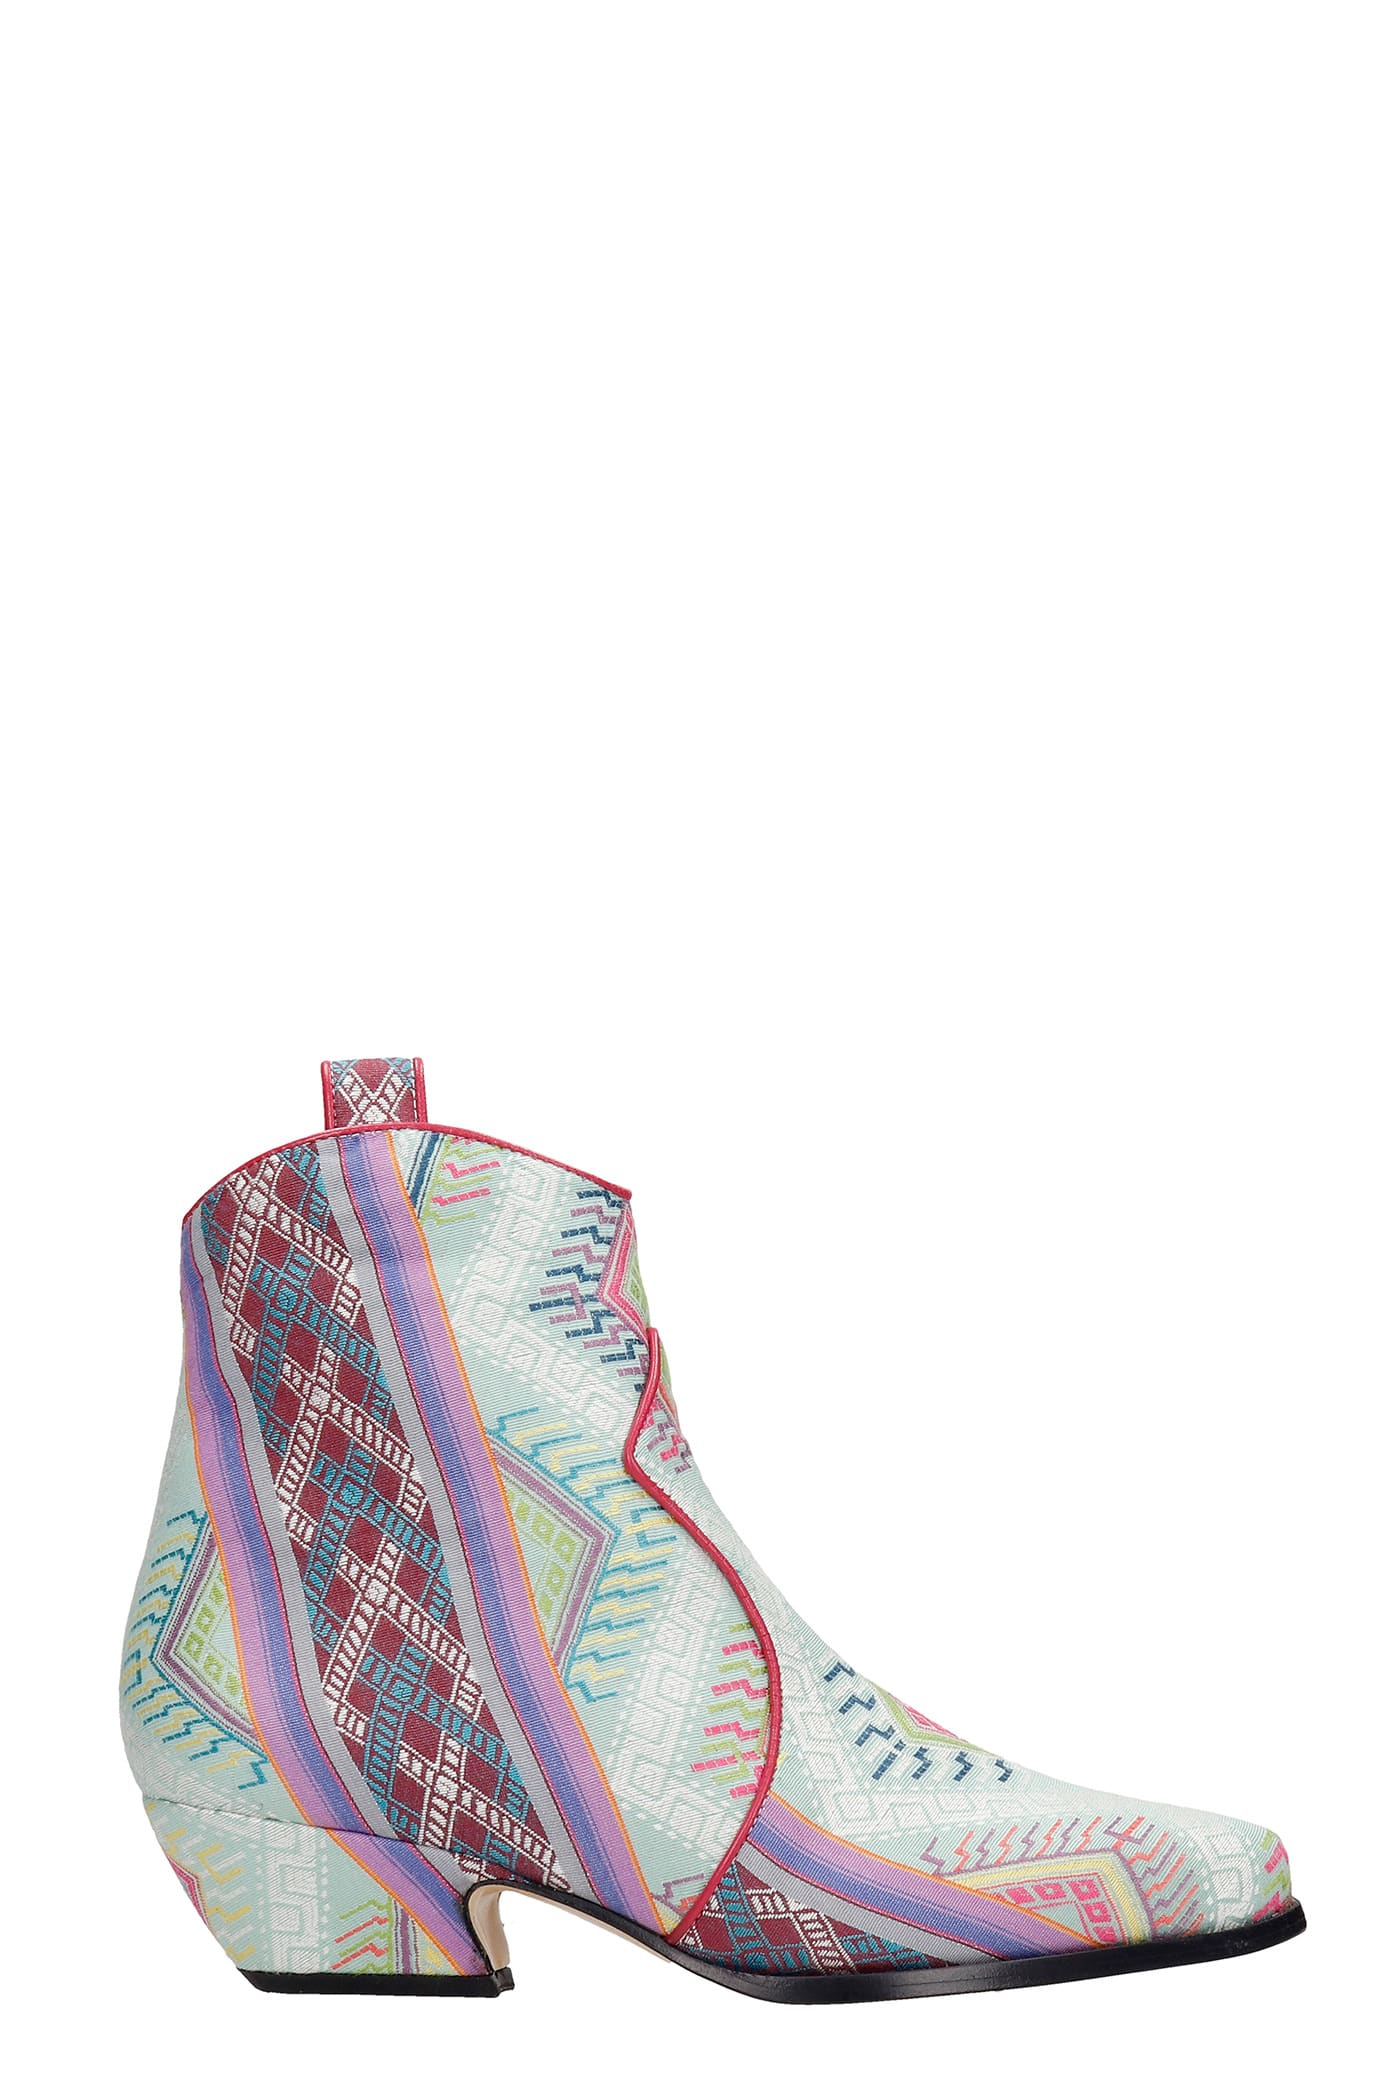 Texan Ankle Boots In Multicolor Fabric